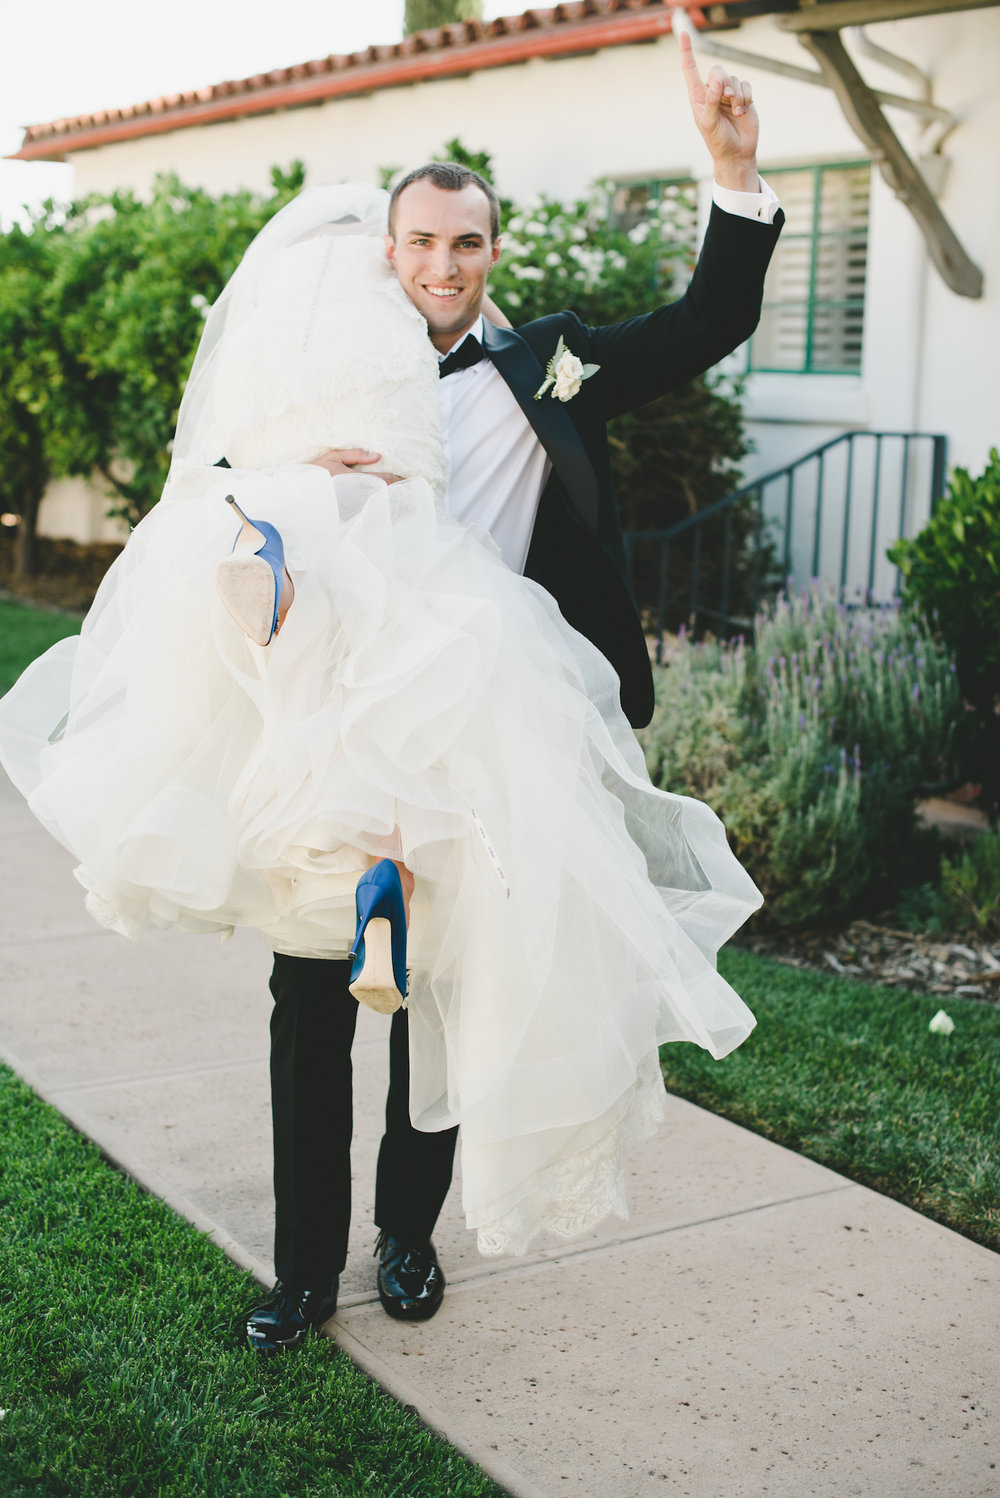 Fun Wedding Photo Ojai Valley Inn